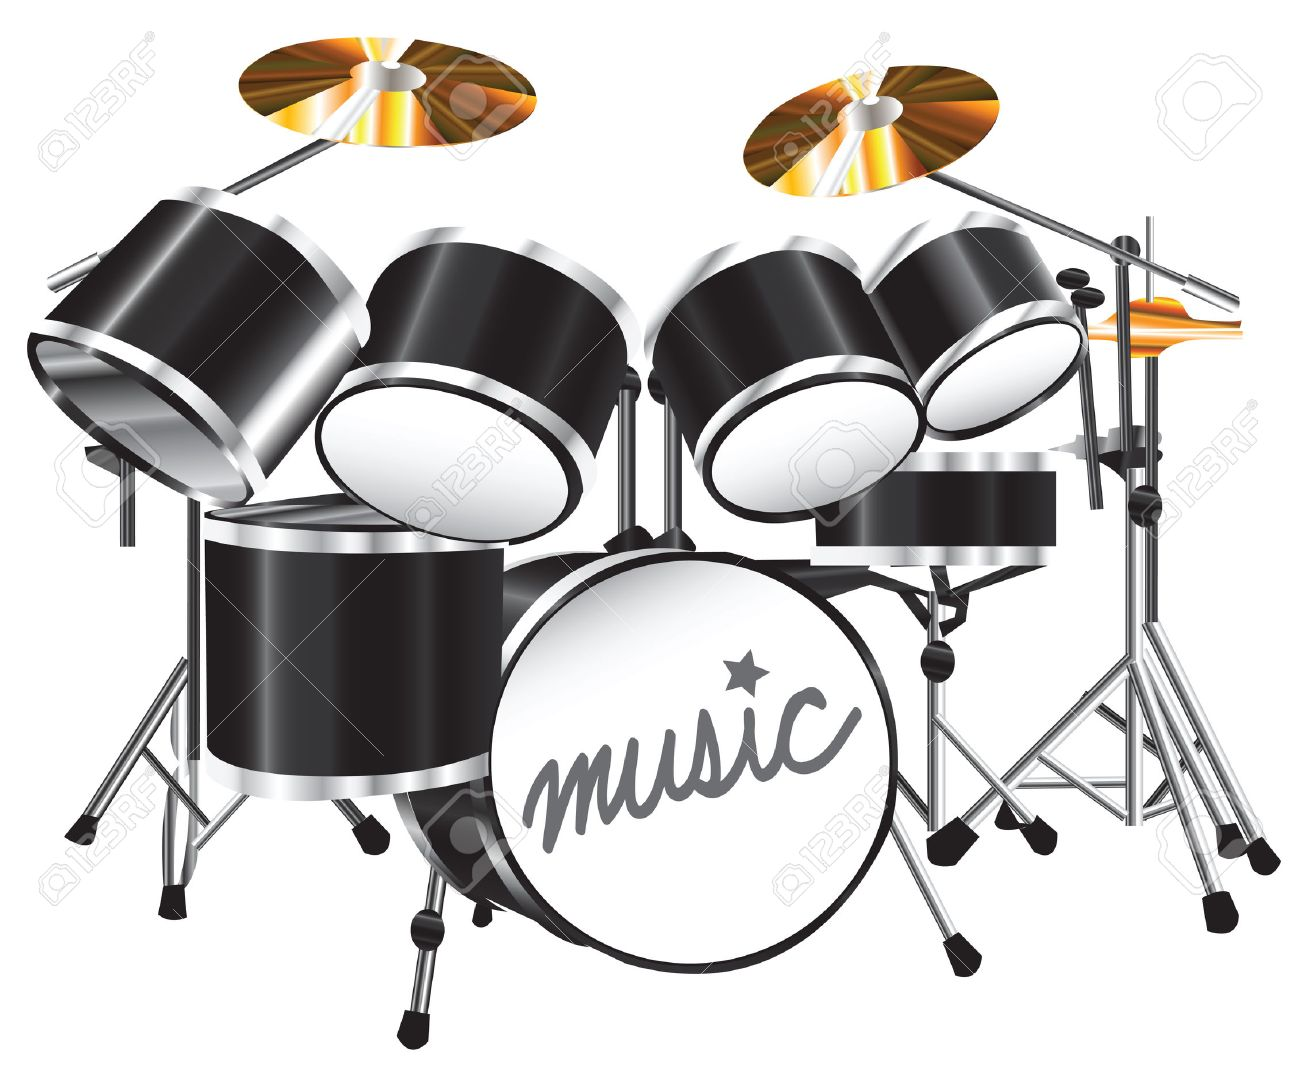 Illustration Drum Set On White Background Royalty Cliparts 1300x1065